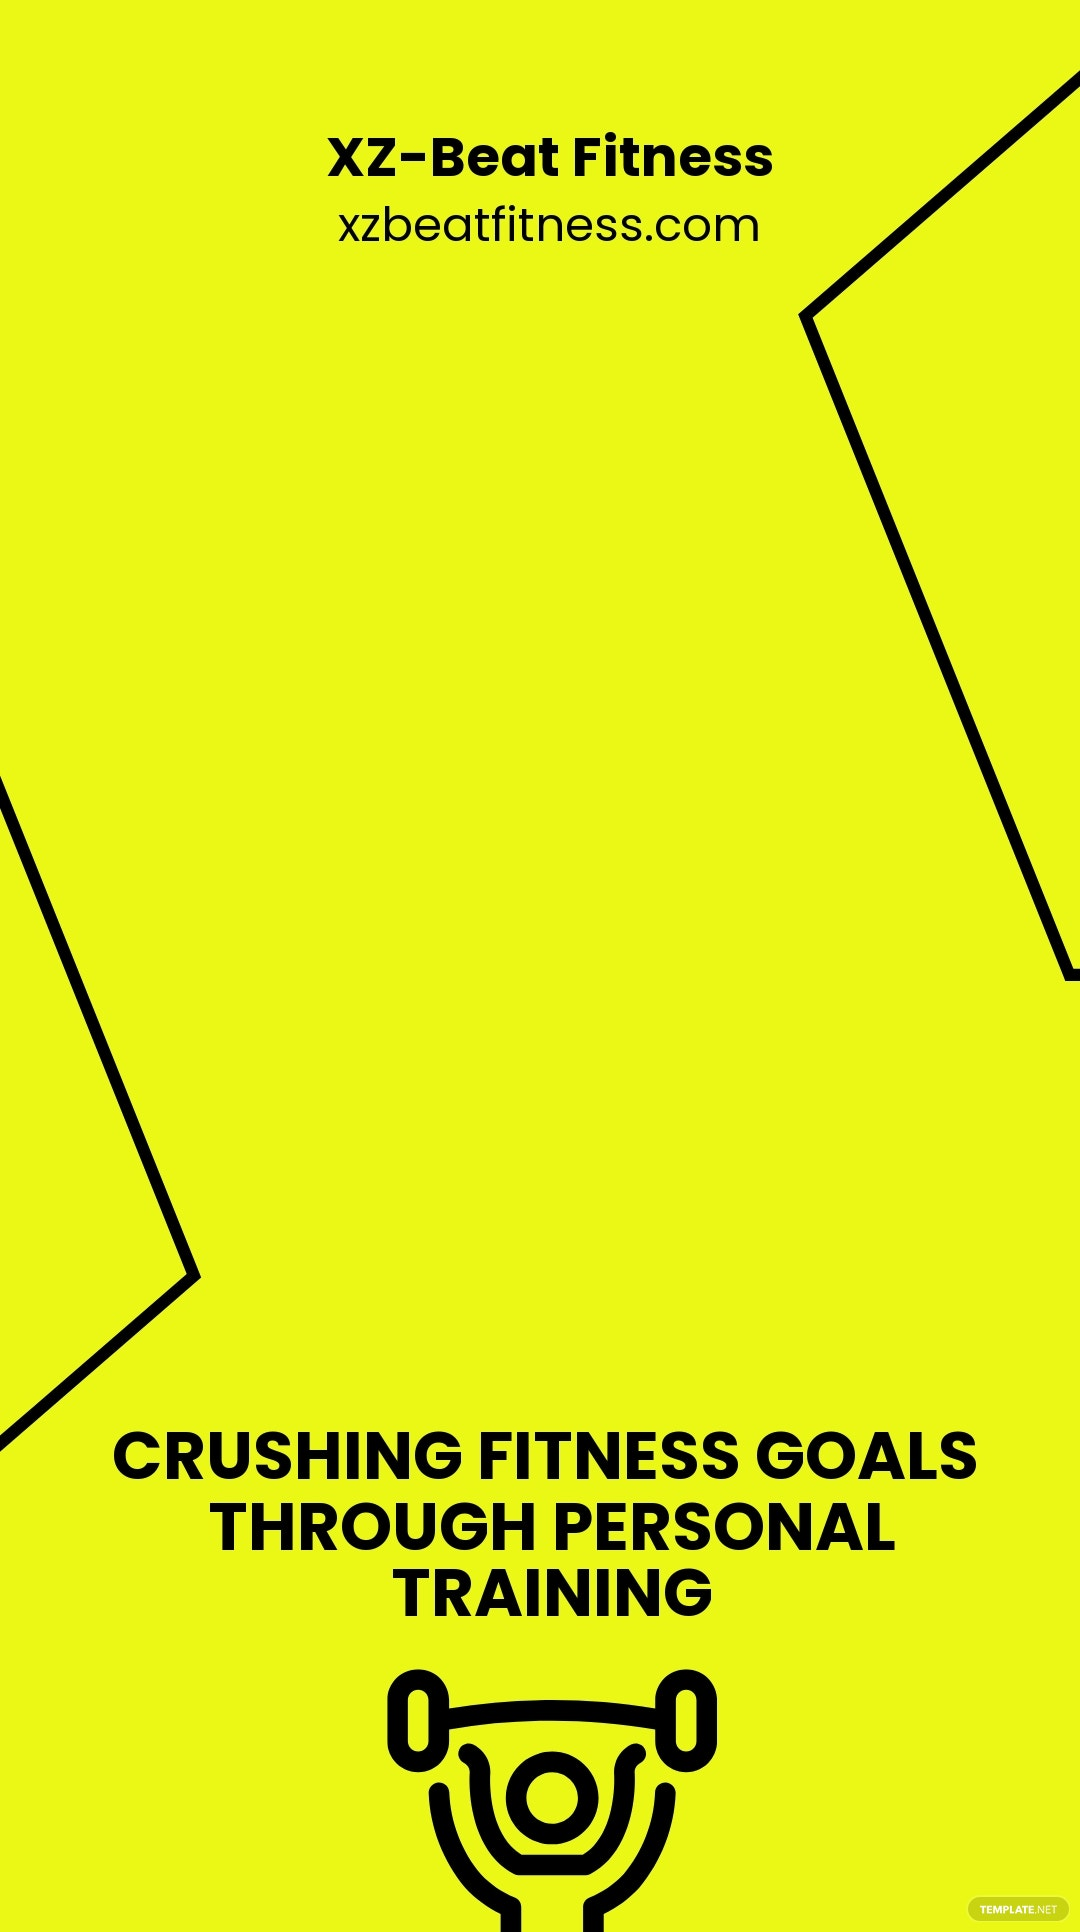 Personal Training Snapchat Geofilter Template.jpe